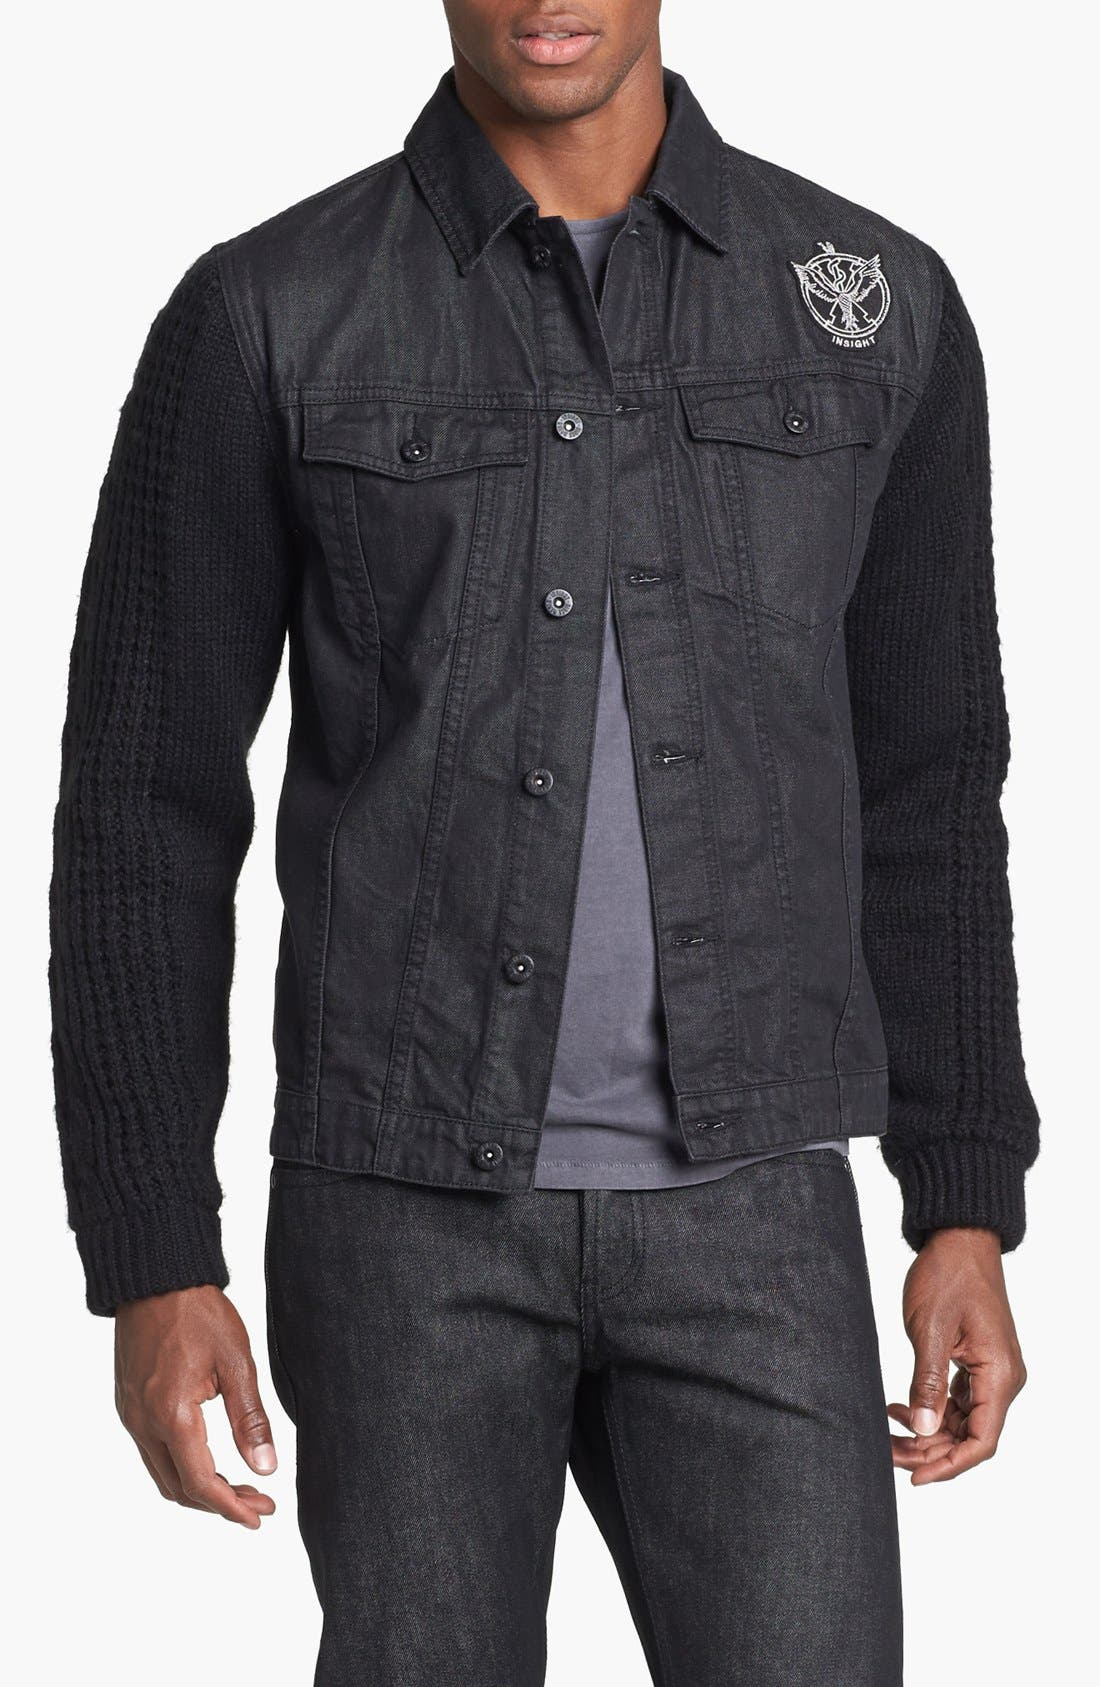 Alternate Image 1 Selected - Insight 'Revival' Denim Jacket with Knit Sleeves